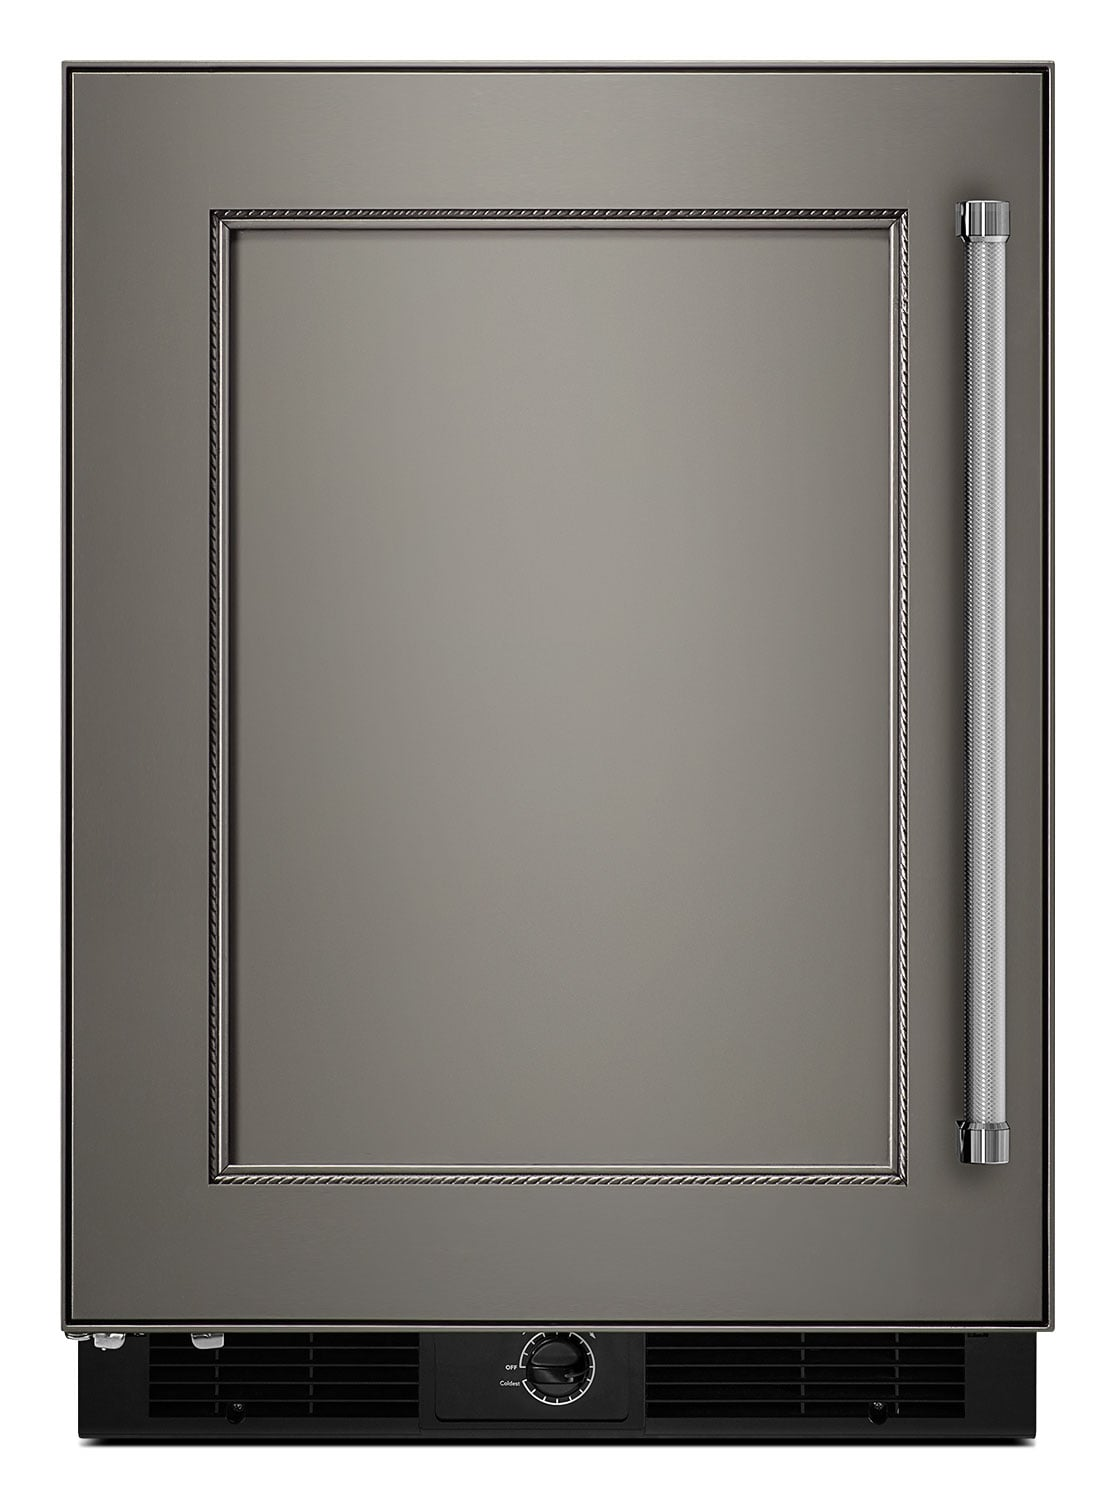 Refrigerators and Freezers - KitchenAid 4.9 Cu. Ft. Undercounter Refrigerator with Left Door Swing - Panel Ready